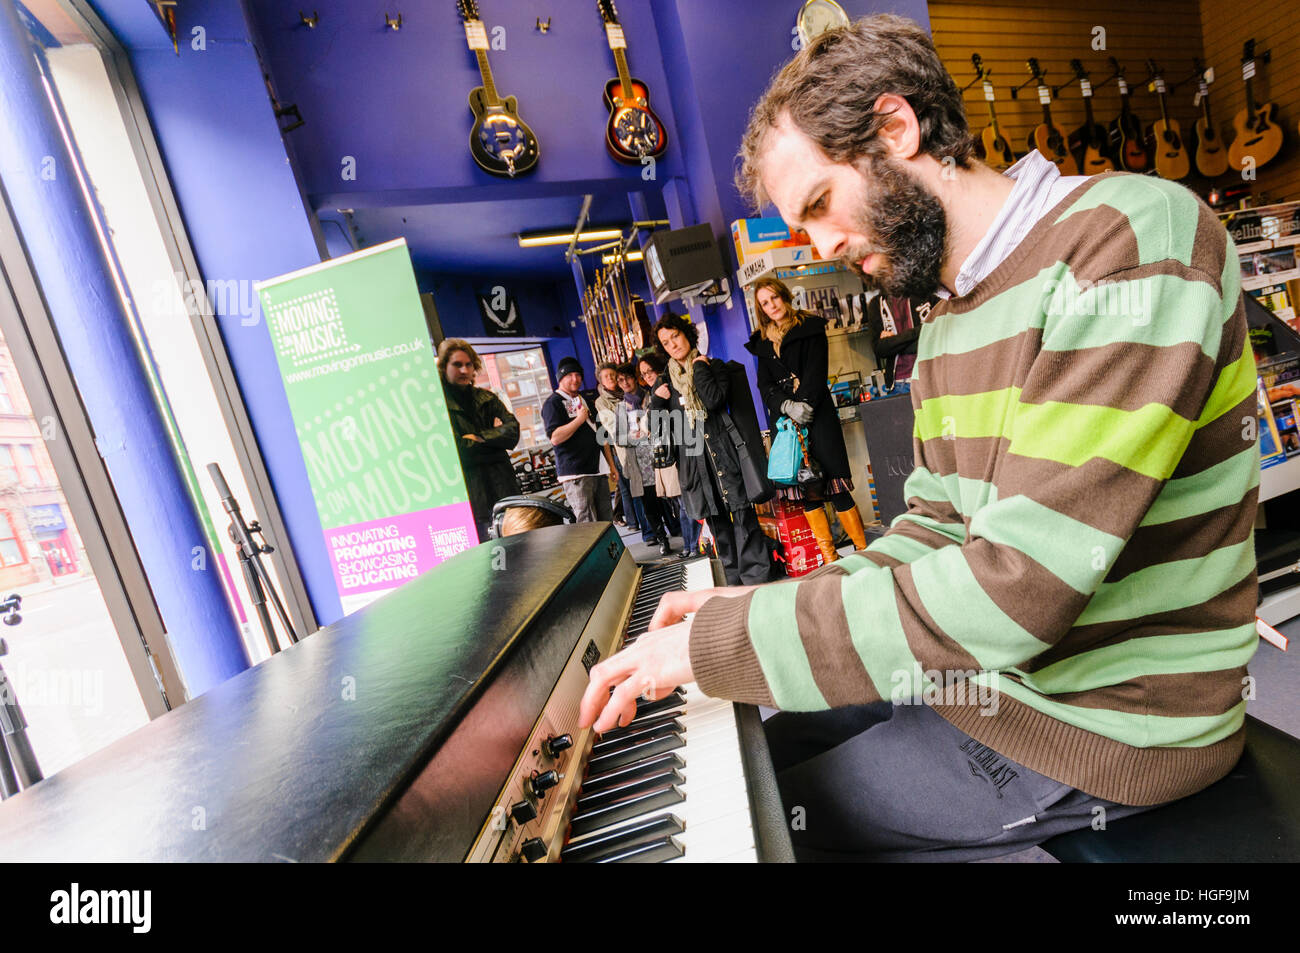 Pianist Matthew Bourne plays an old Fender Rhodes electronic keyboard in a music shop. - Stock Image